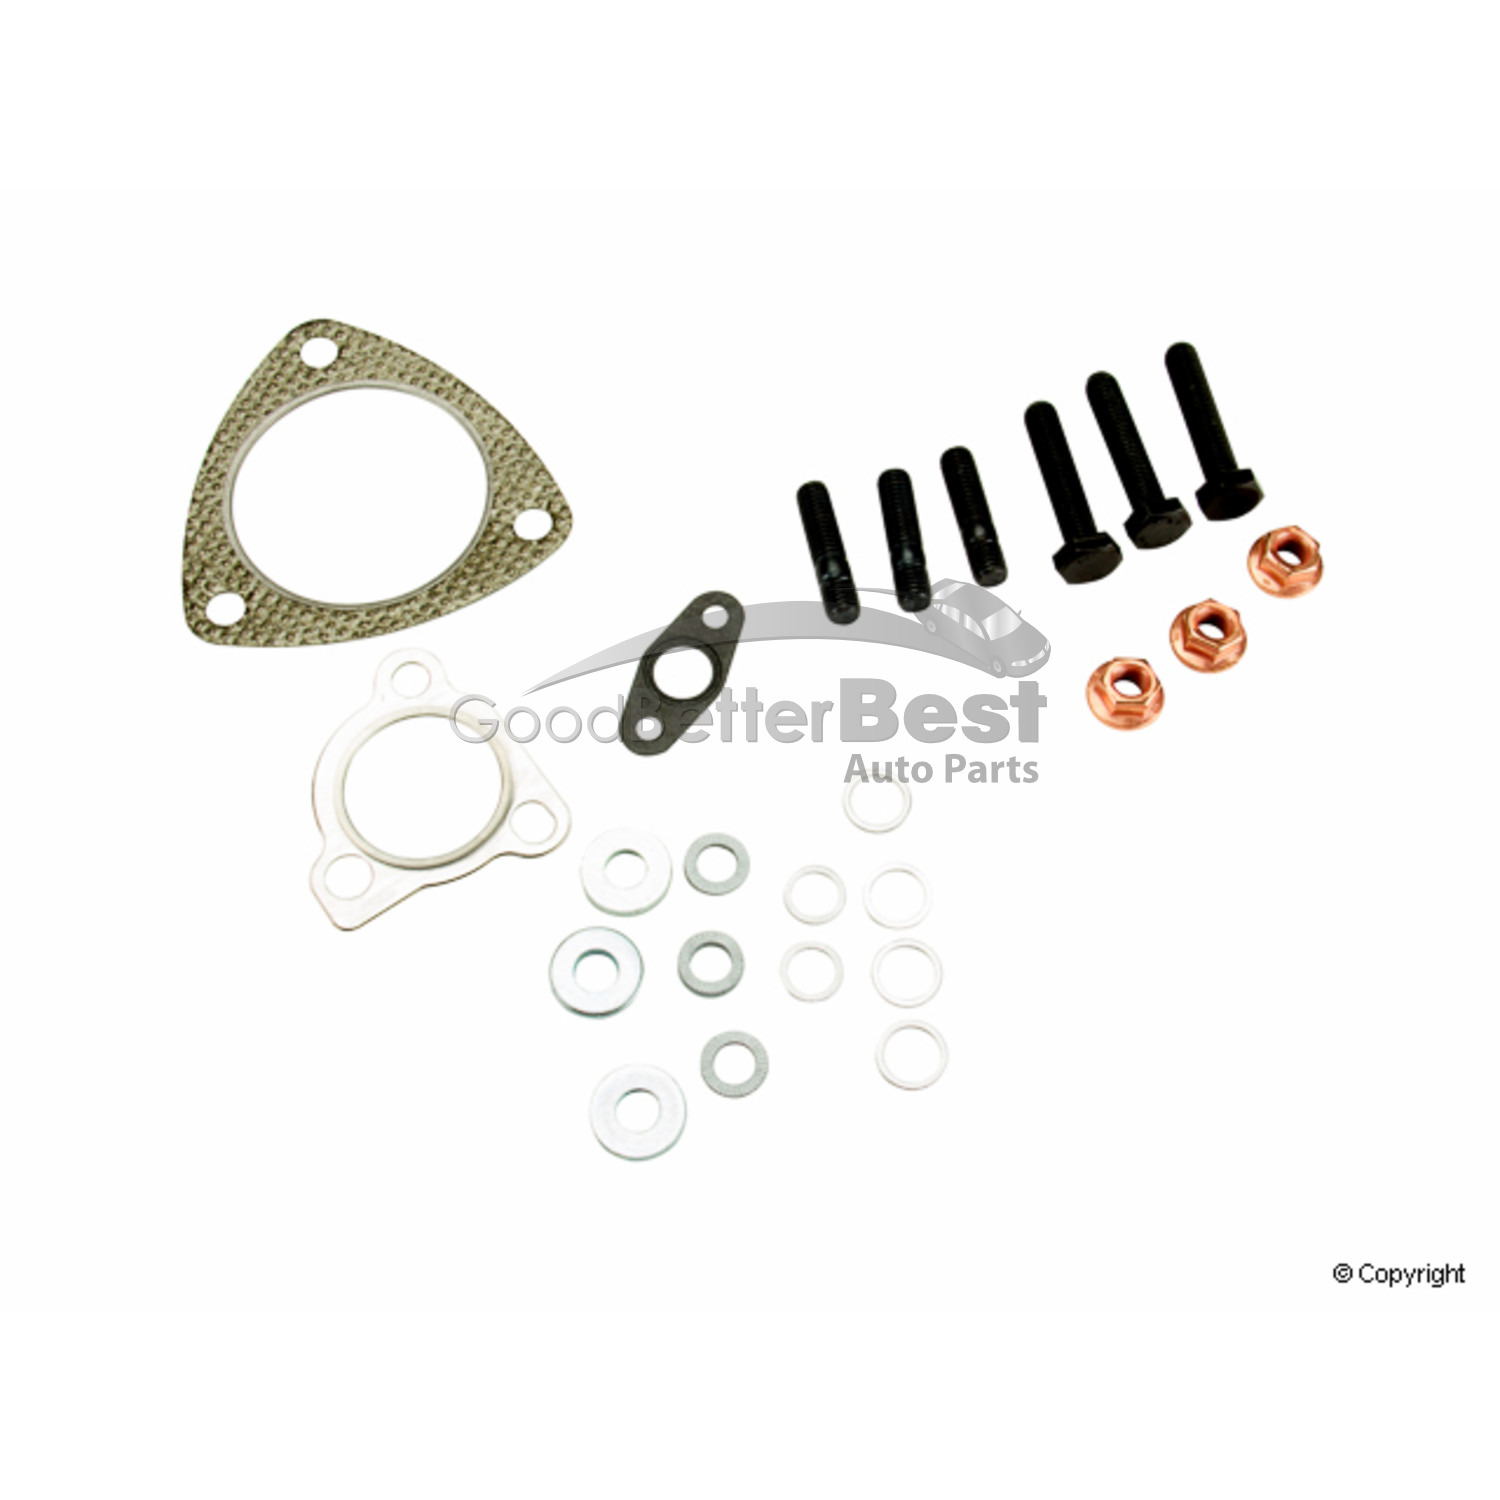 New Victor Reinz Turbocharger Mounting Kit 041004501